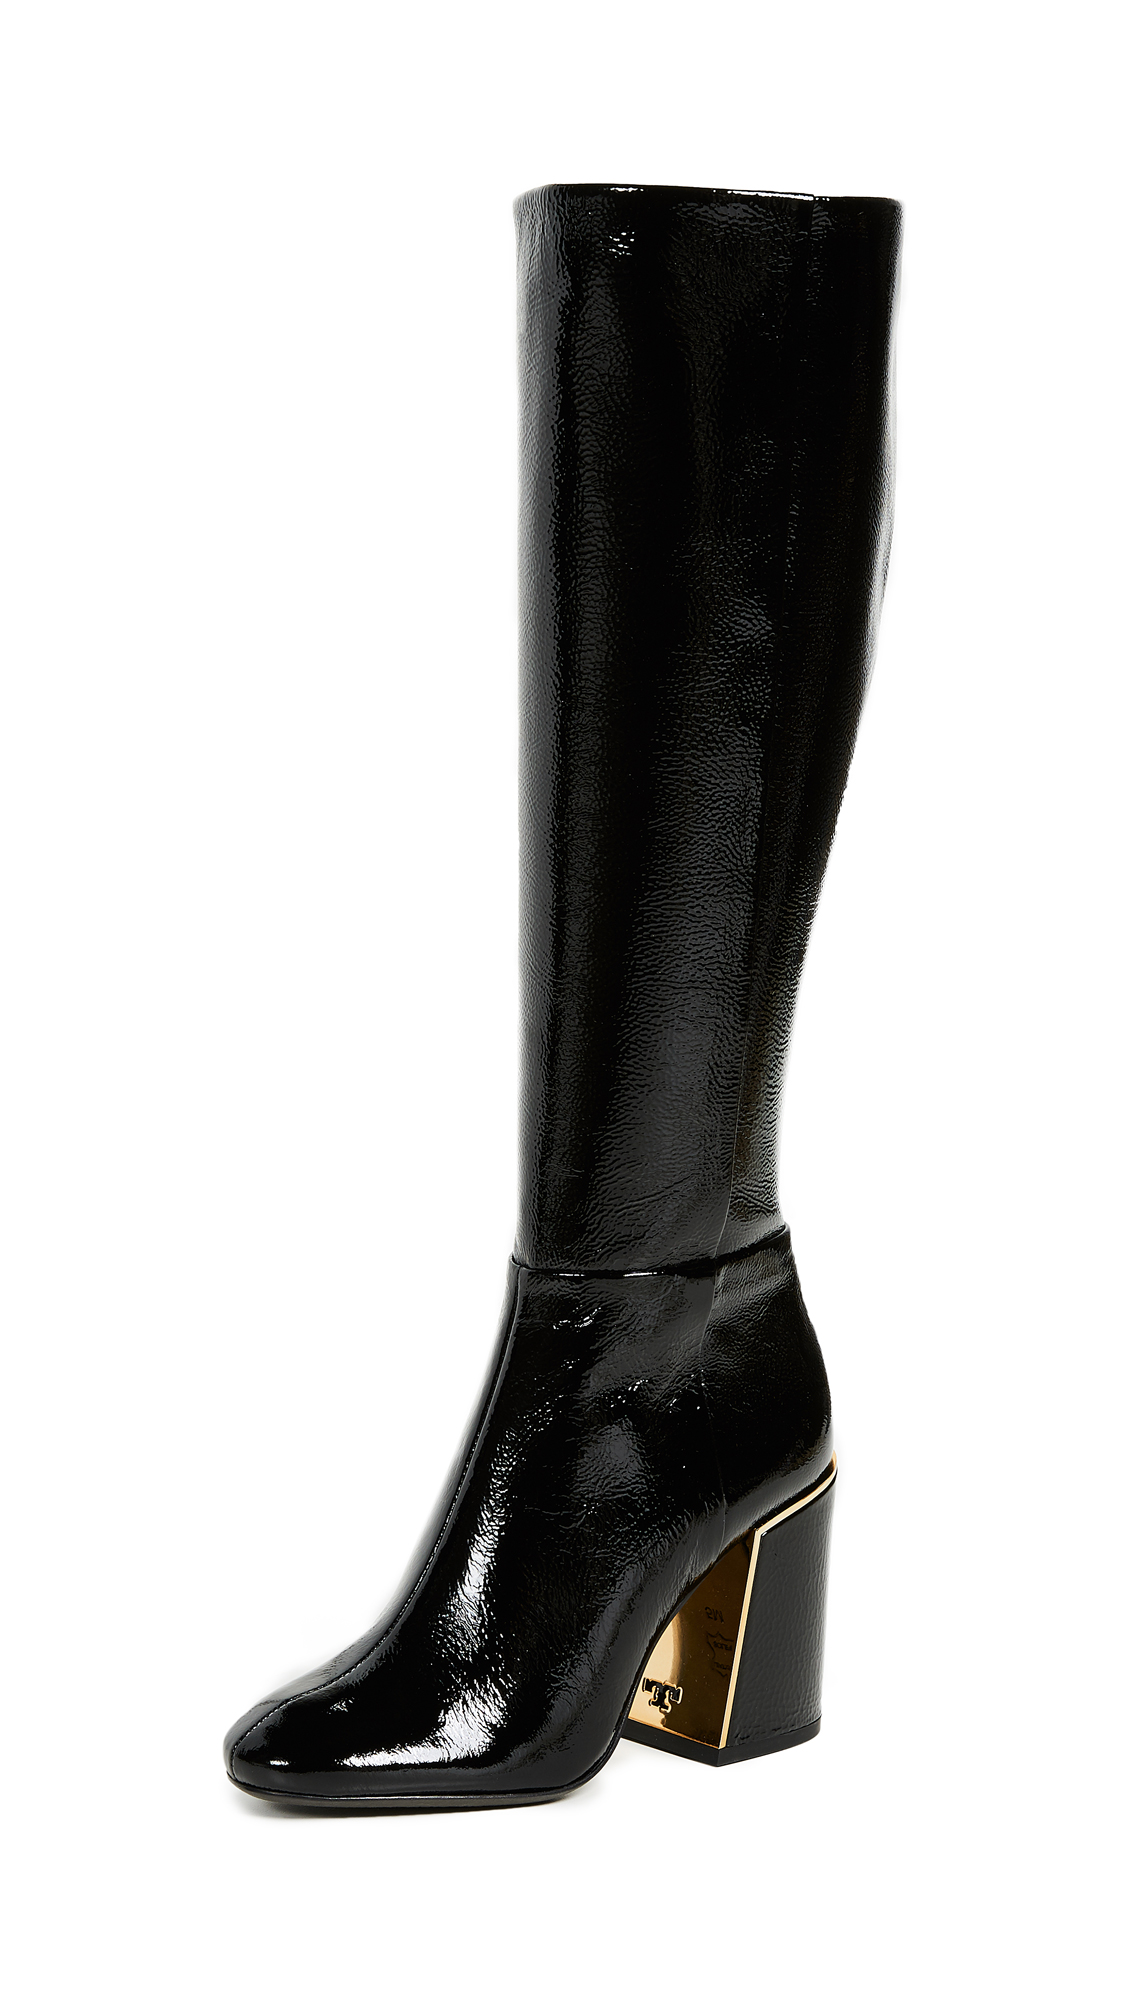 Tory Burch Juliana Tall Boots - Perfect Black